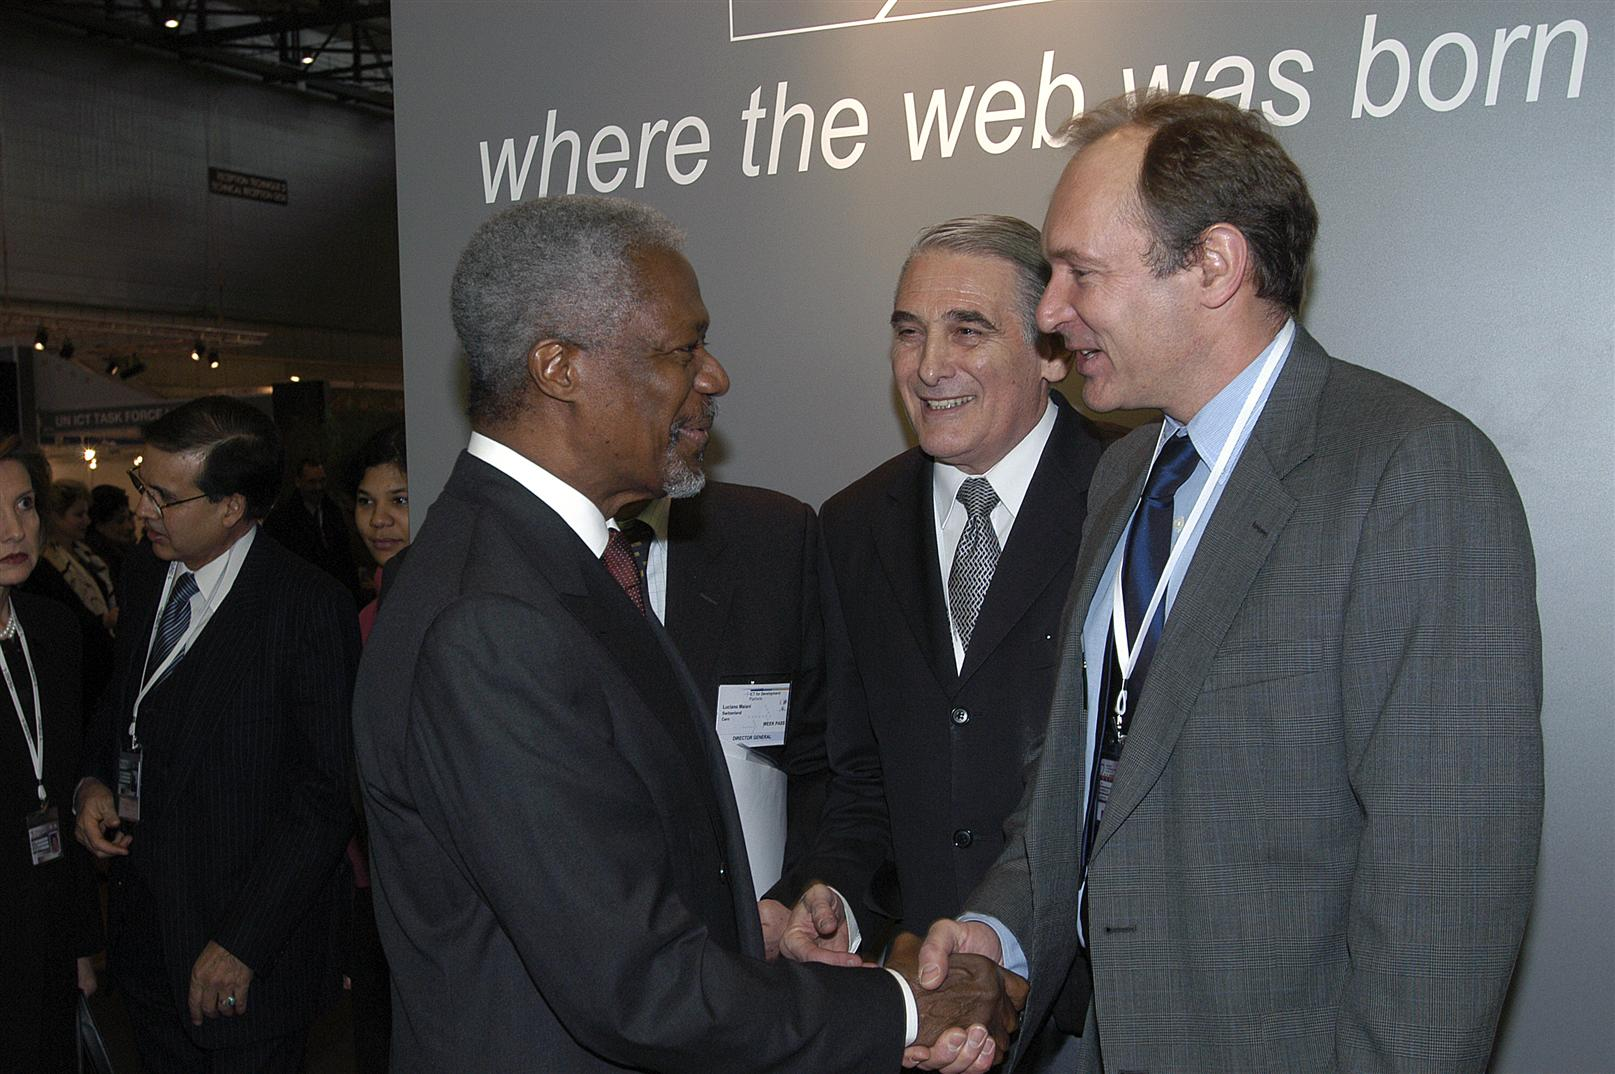 During the 2003 World Summit on the Information Society (WSIS) at Geneva Palexpo, Tim Berners-Lee, W3C's director (World Wide Web consortium) was introduced to Kofi Annan, Secretary General of the United Nations.